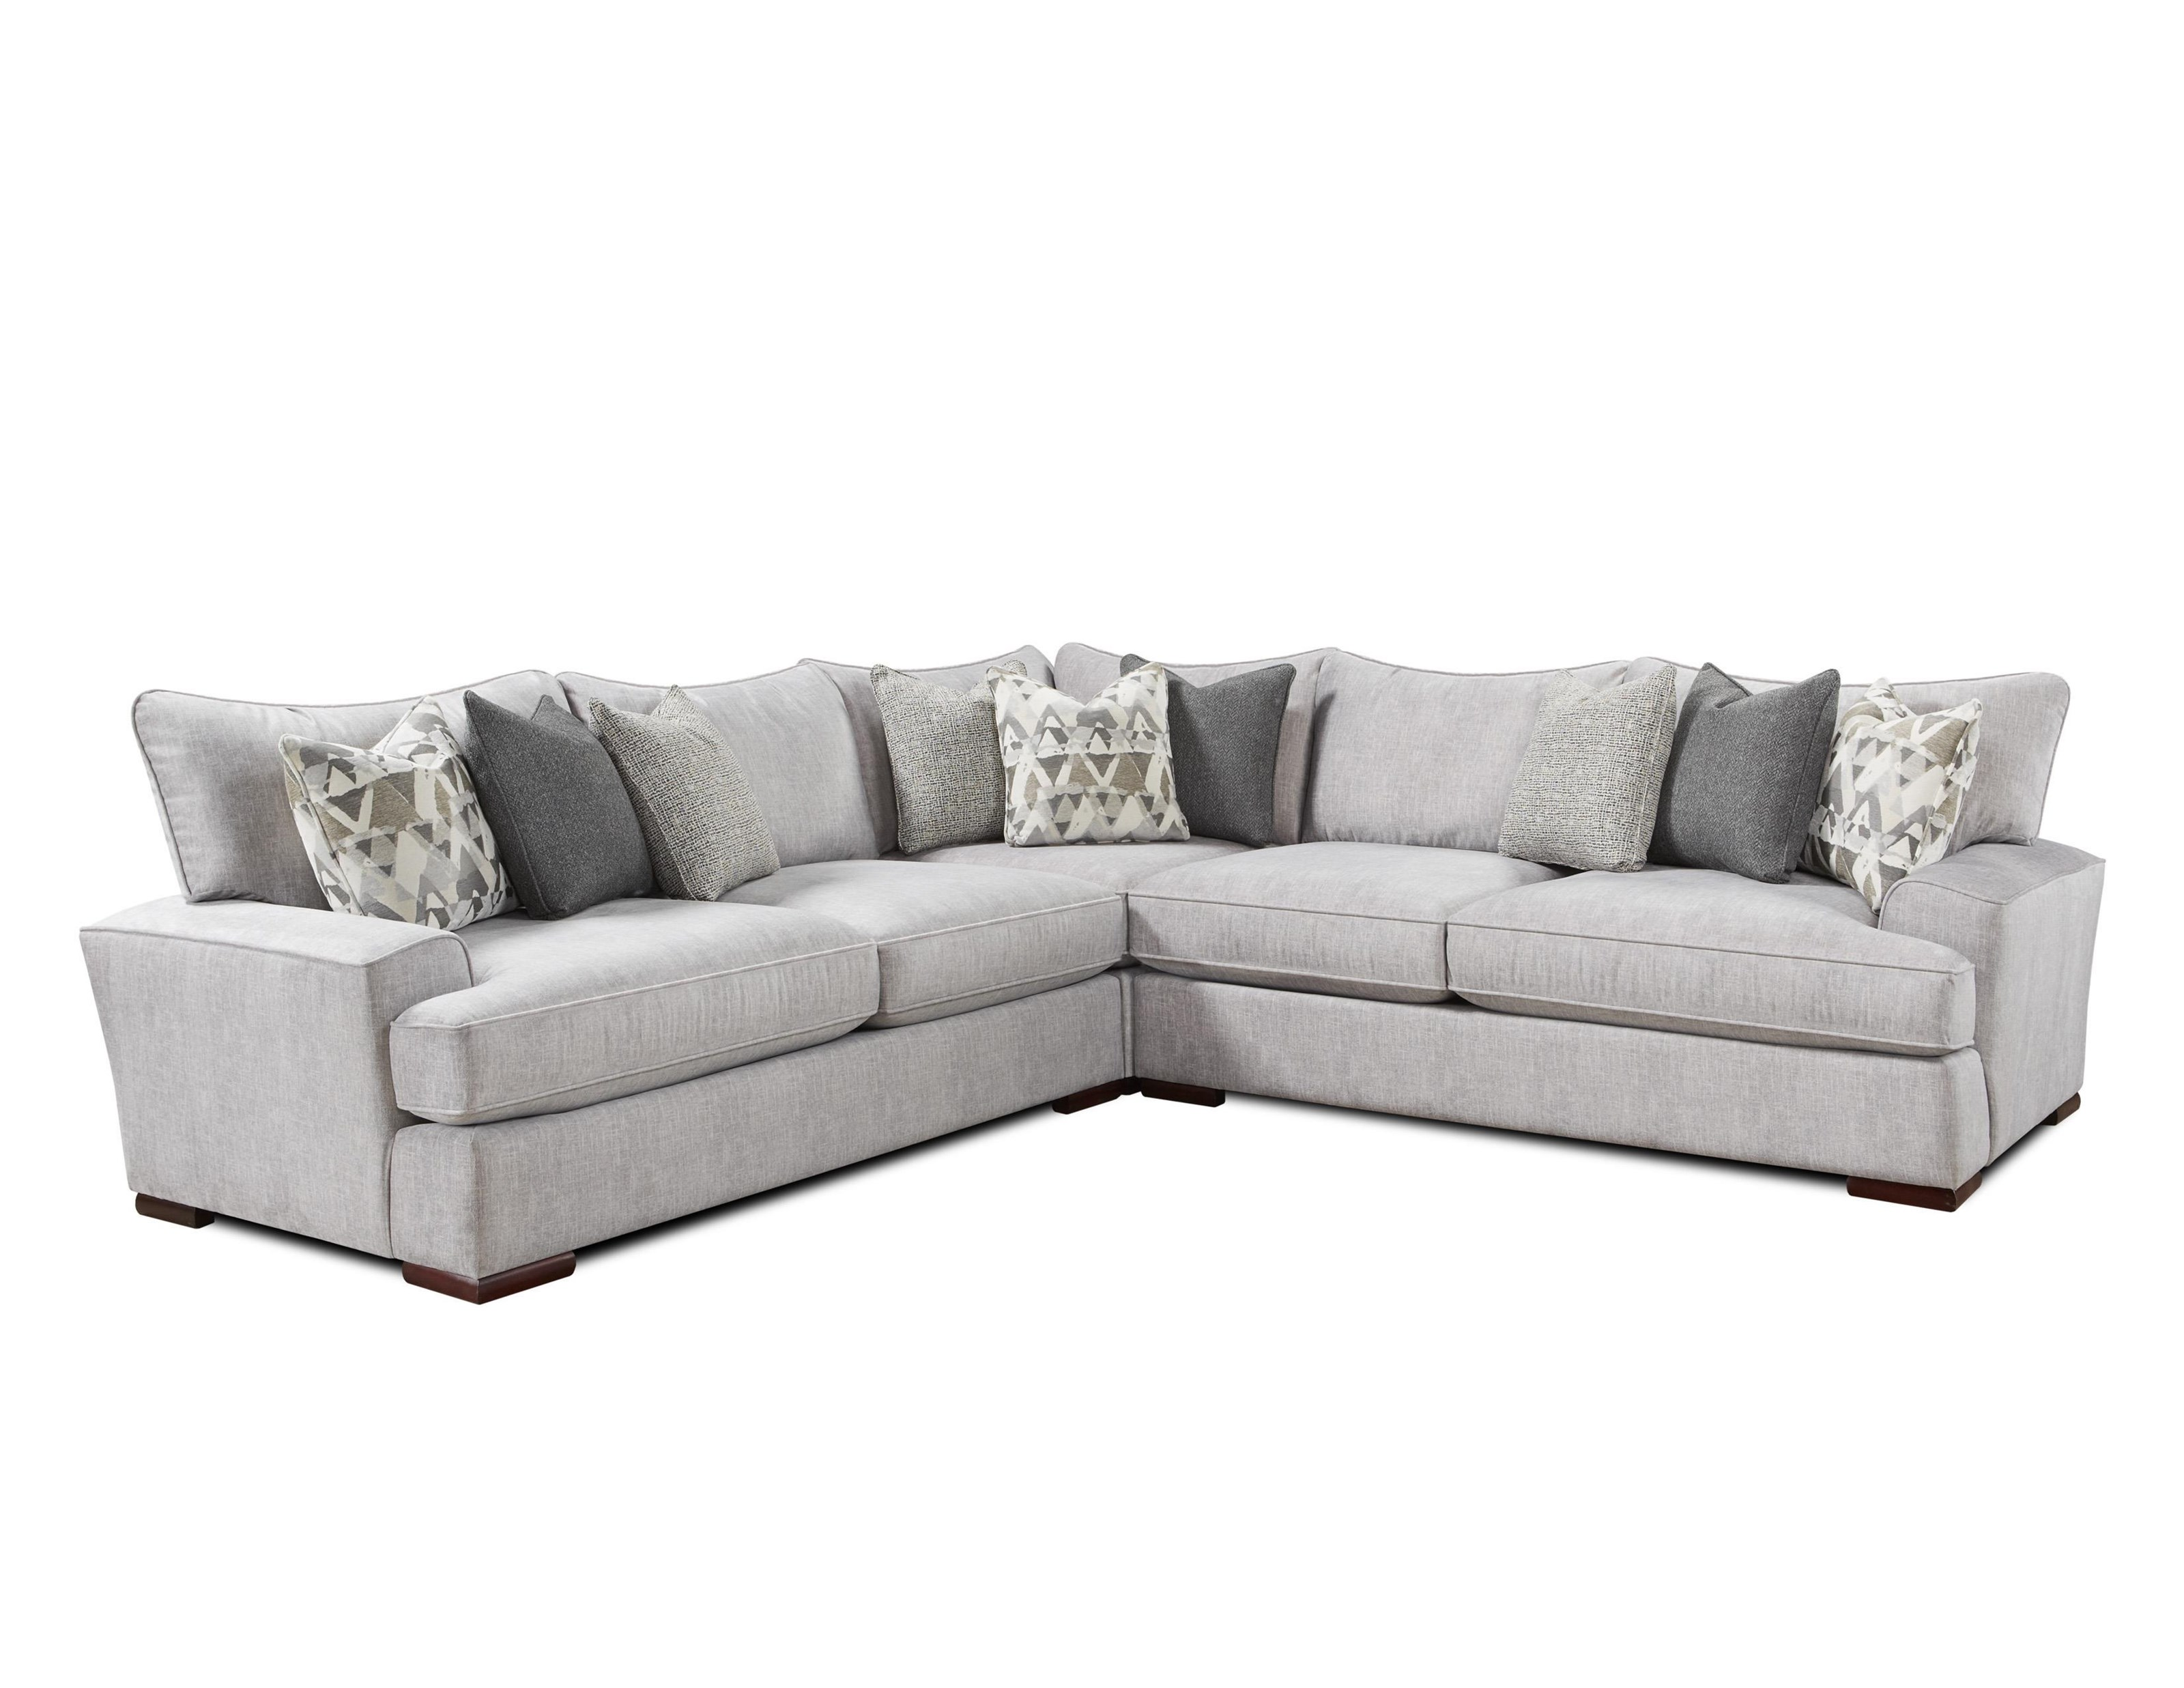 Fusion Furniture Silver Mountain L-Shaped Sectional  - Item Number: 2000+2001+2005ALTON SILVER